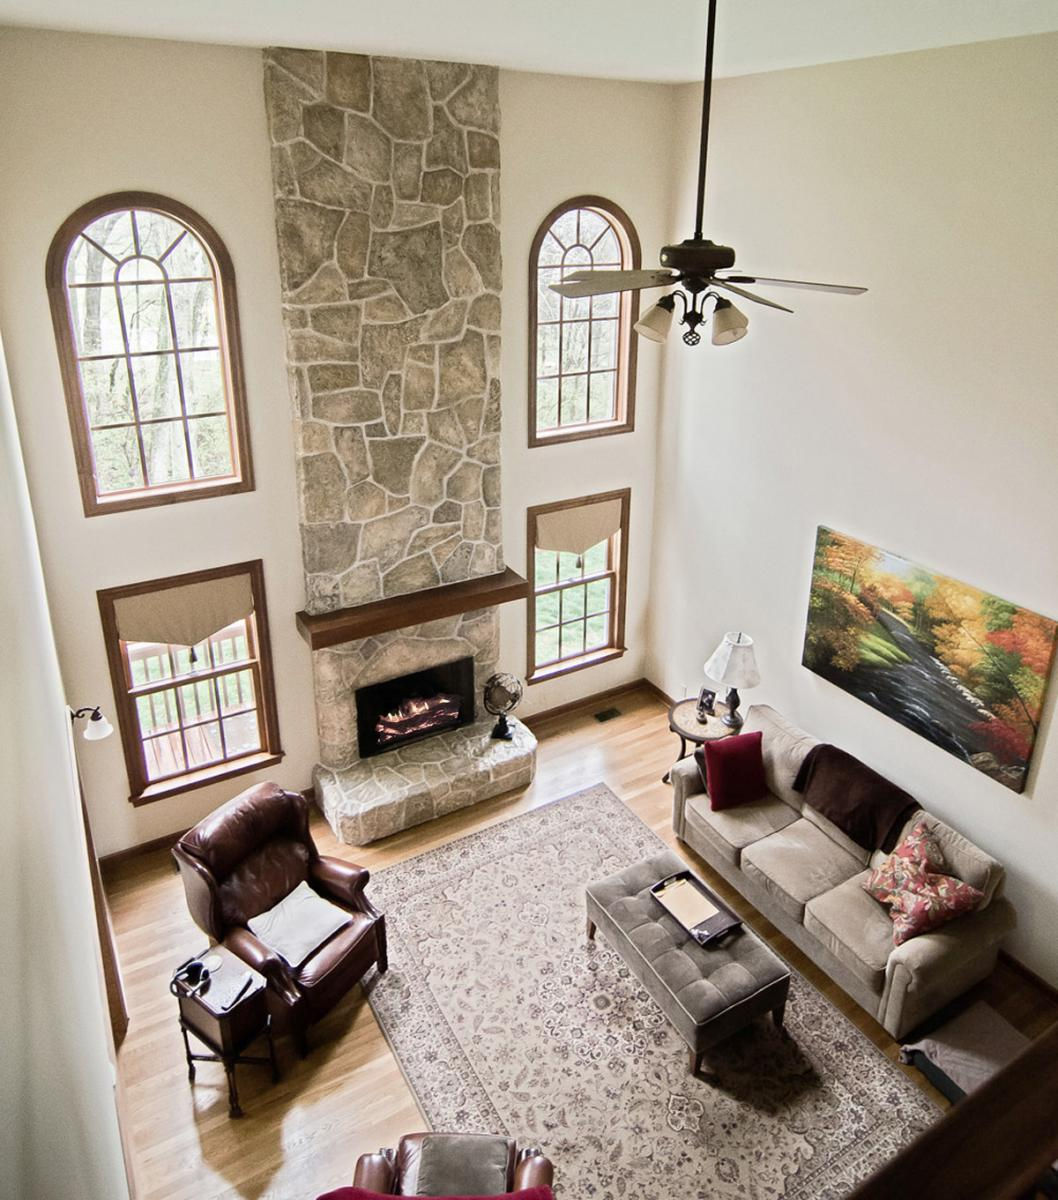 Faux plaster was used to create a complete new stone configuration. Then – custom colored glazes where applied to give this fireplace makeover that authentic look and feel.